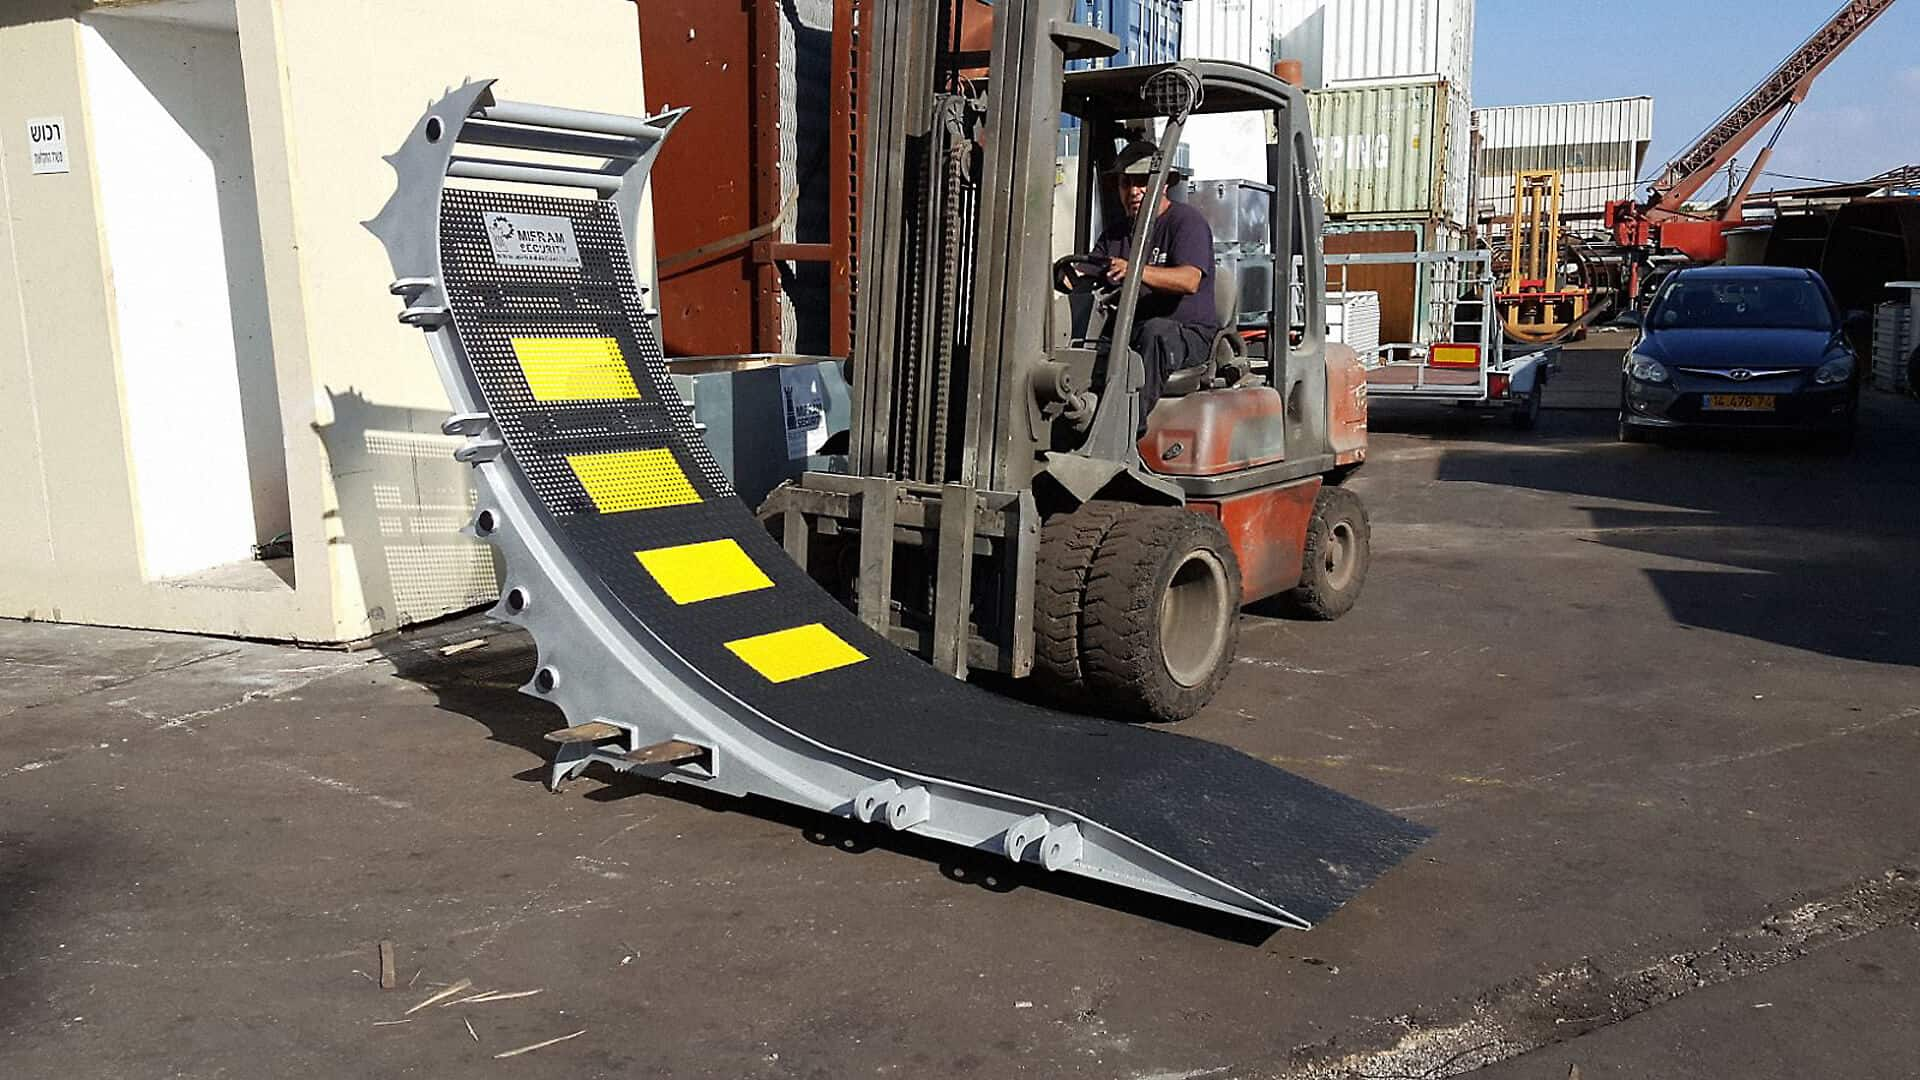 Moving a unit of the RMB truck barrier using a forklift